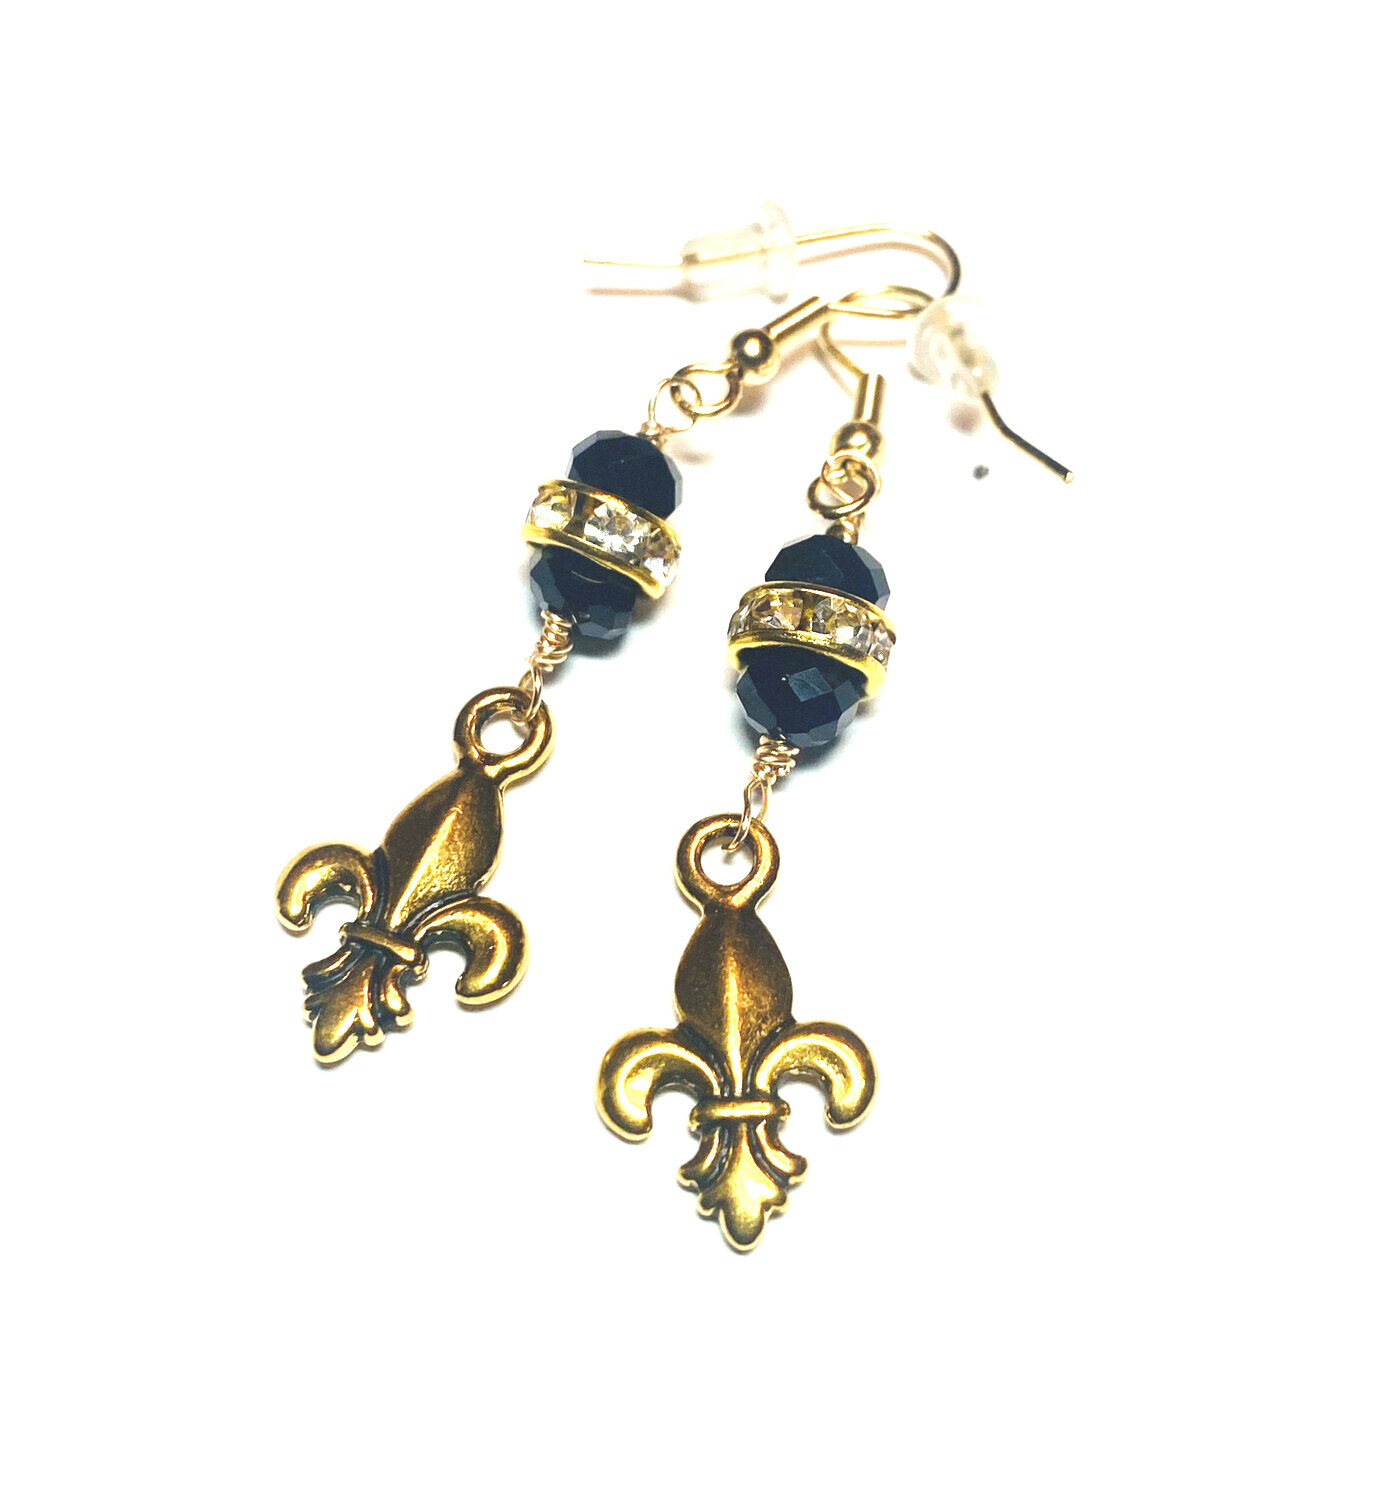 Saints Black And Gold Earrings